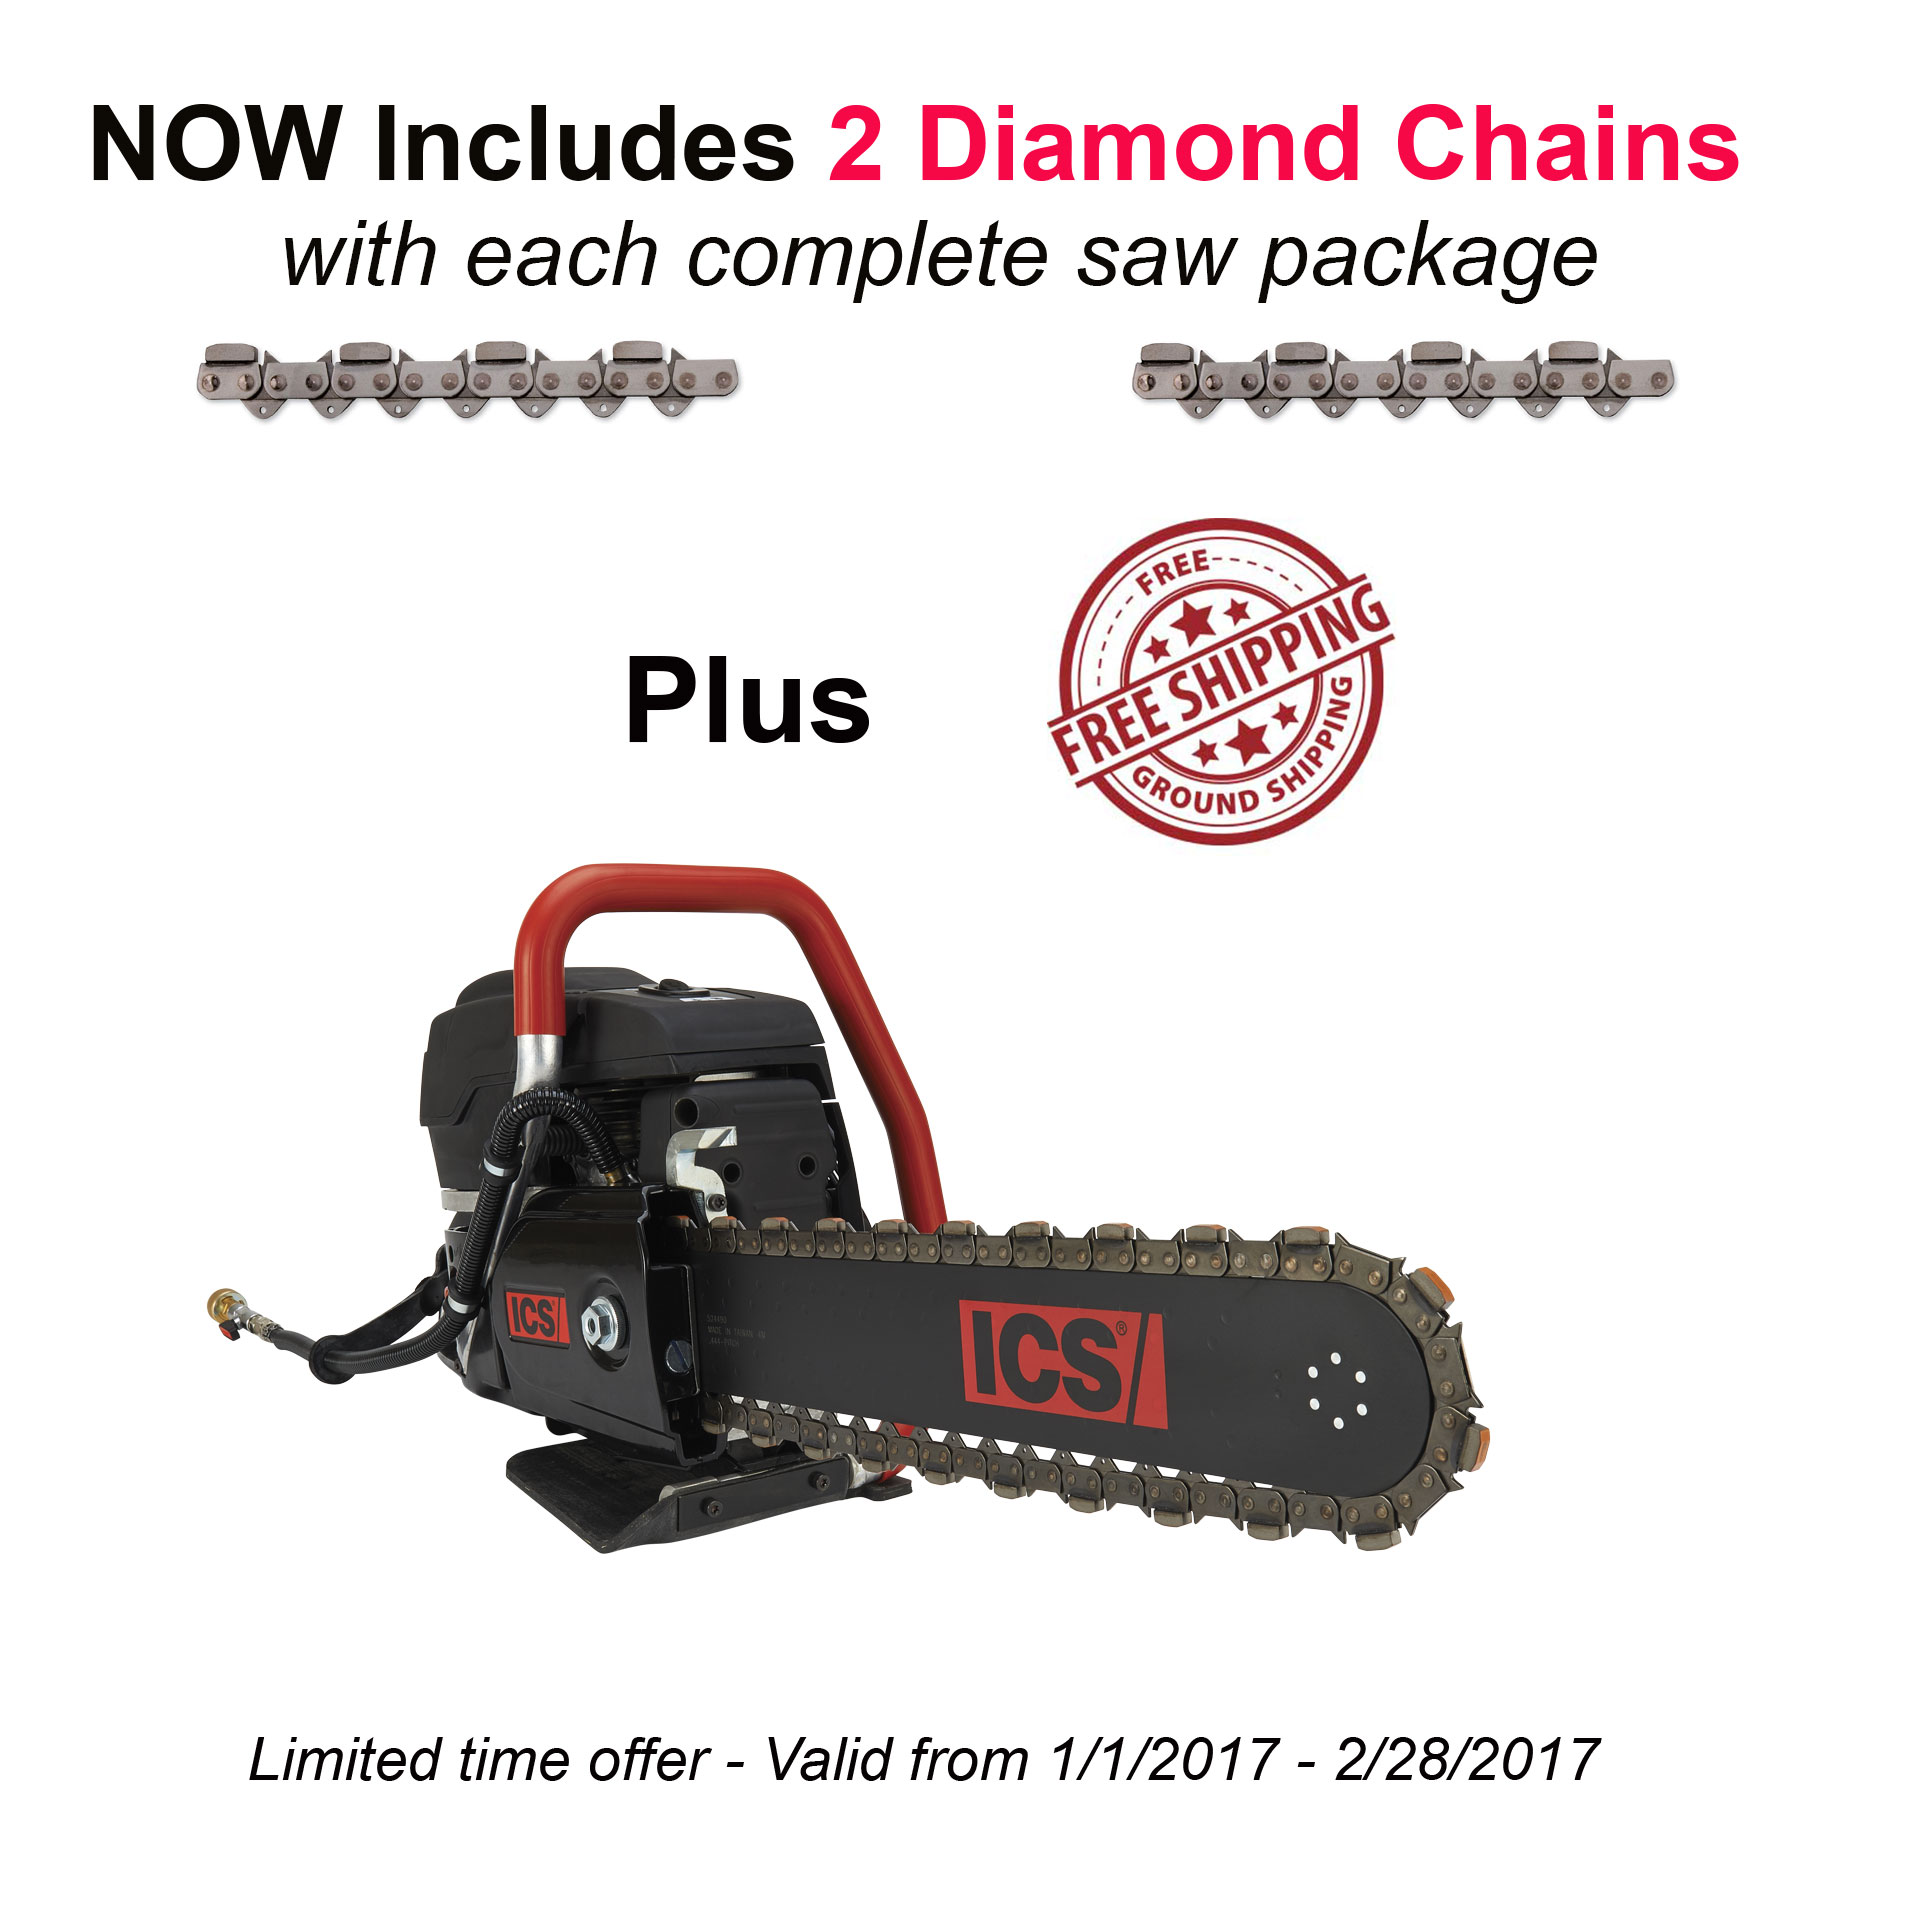 Ics 576151 695xl 12 F4 12in Concrete Chain Saw Package